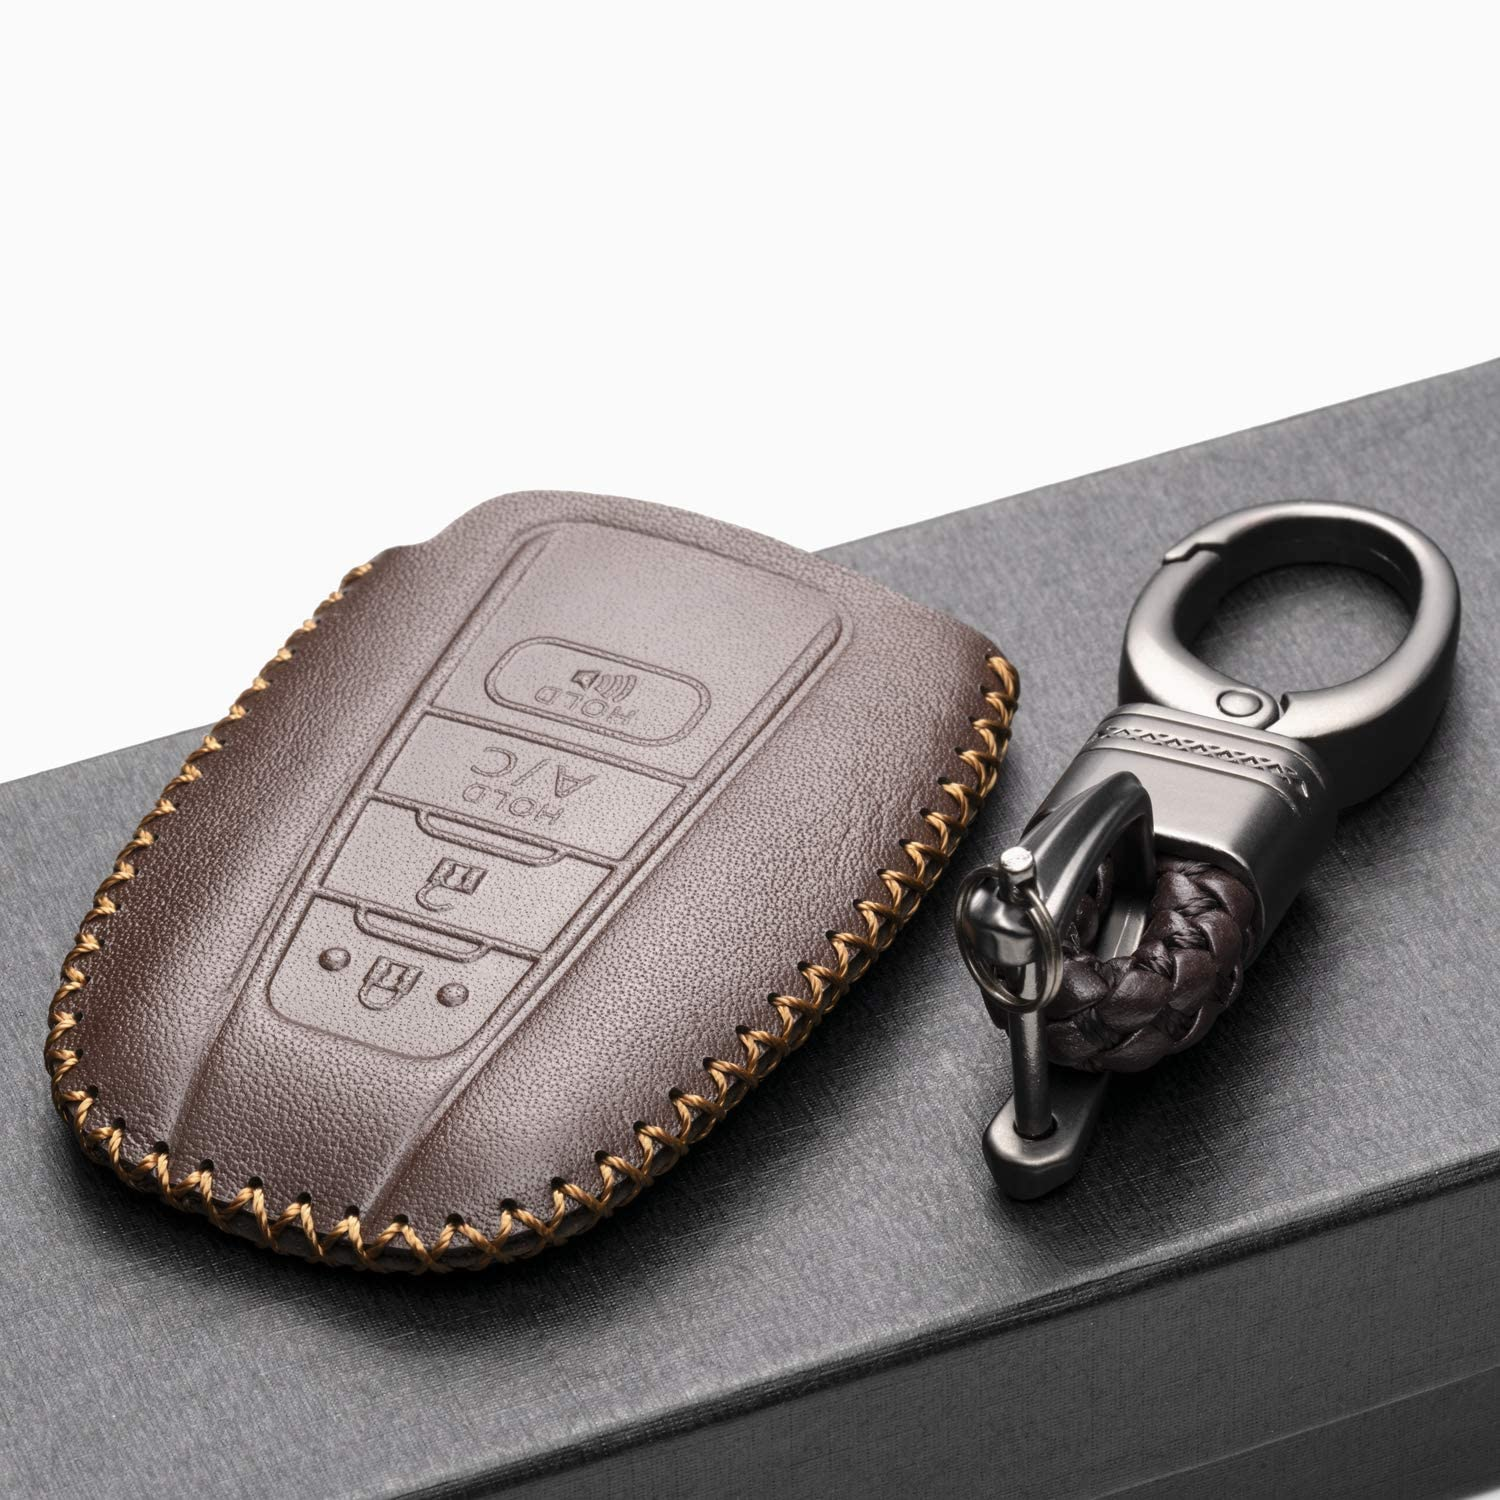 Avalon C-HR Camry 4 Buttons, Red Vitodeco Genuine Leather Remote Key Fob Case Cover Protector with Key Chain for 2019 Toyota Corolla Hatchback Prius